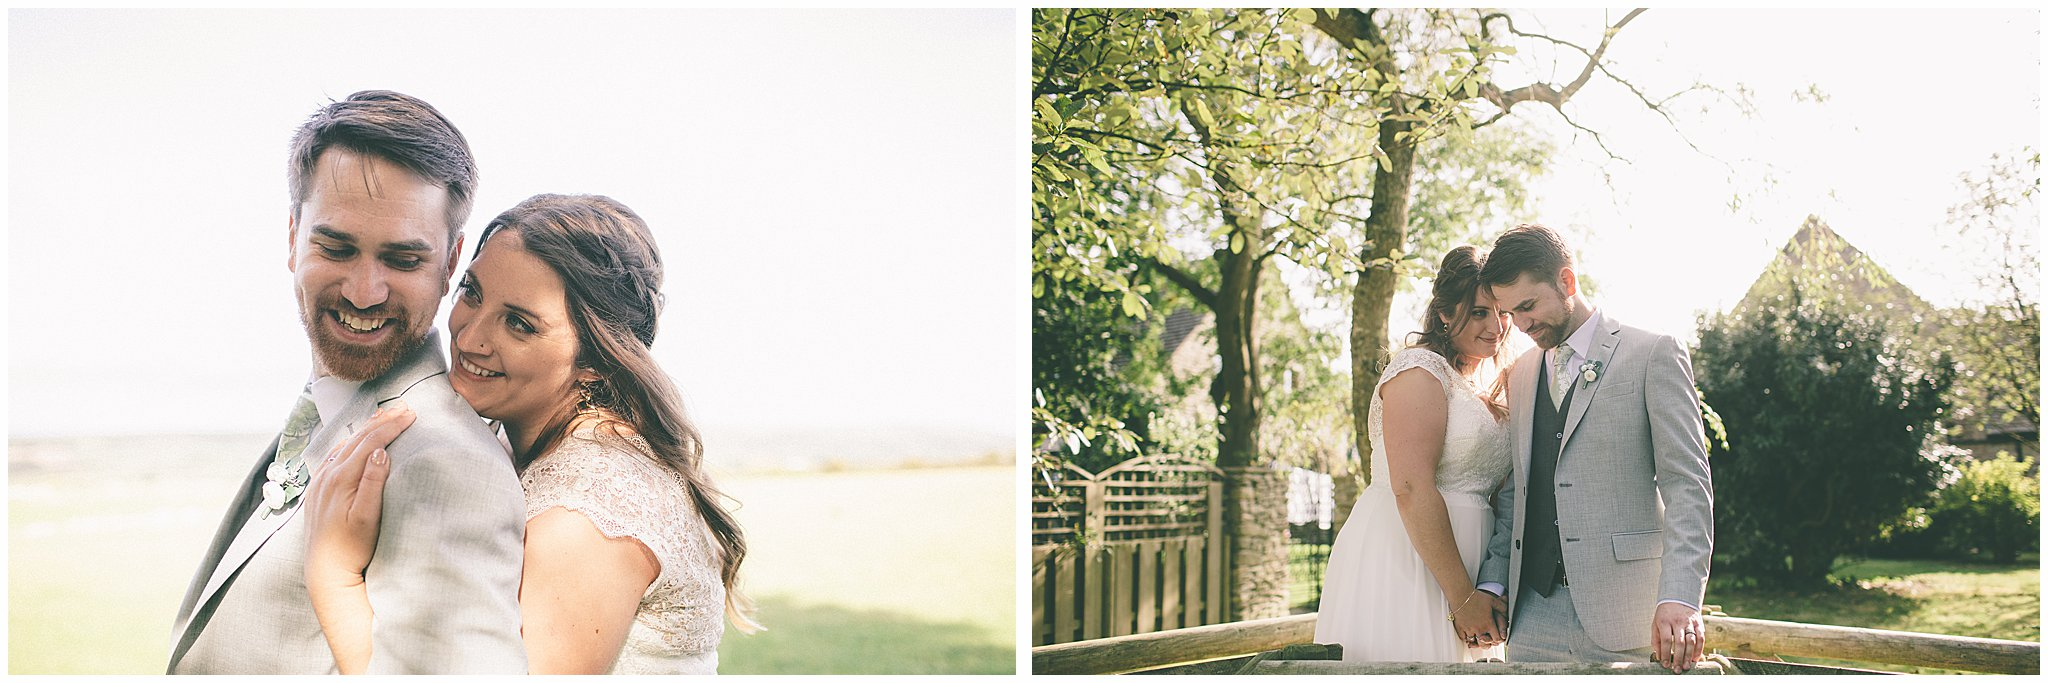 Kingston Country Courtyard Wedding Photography